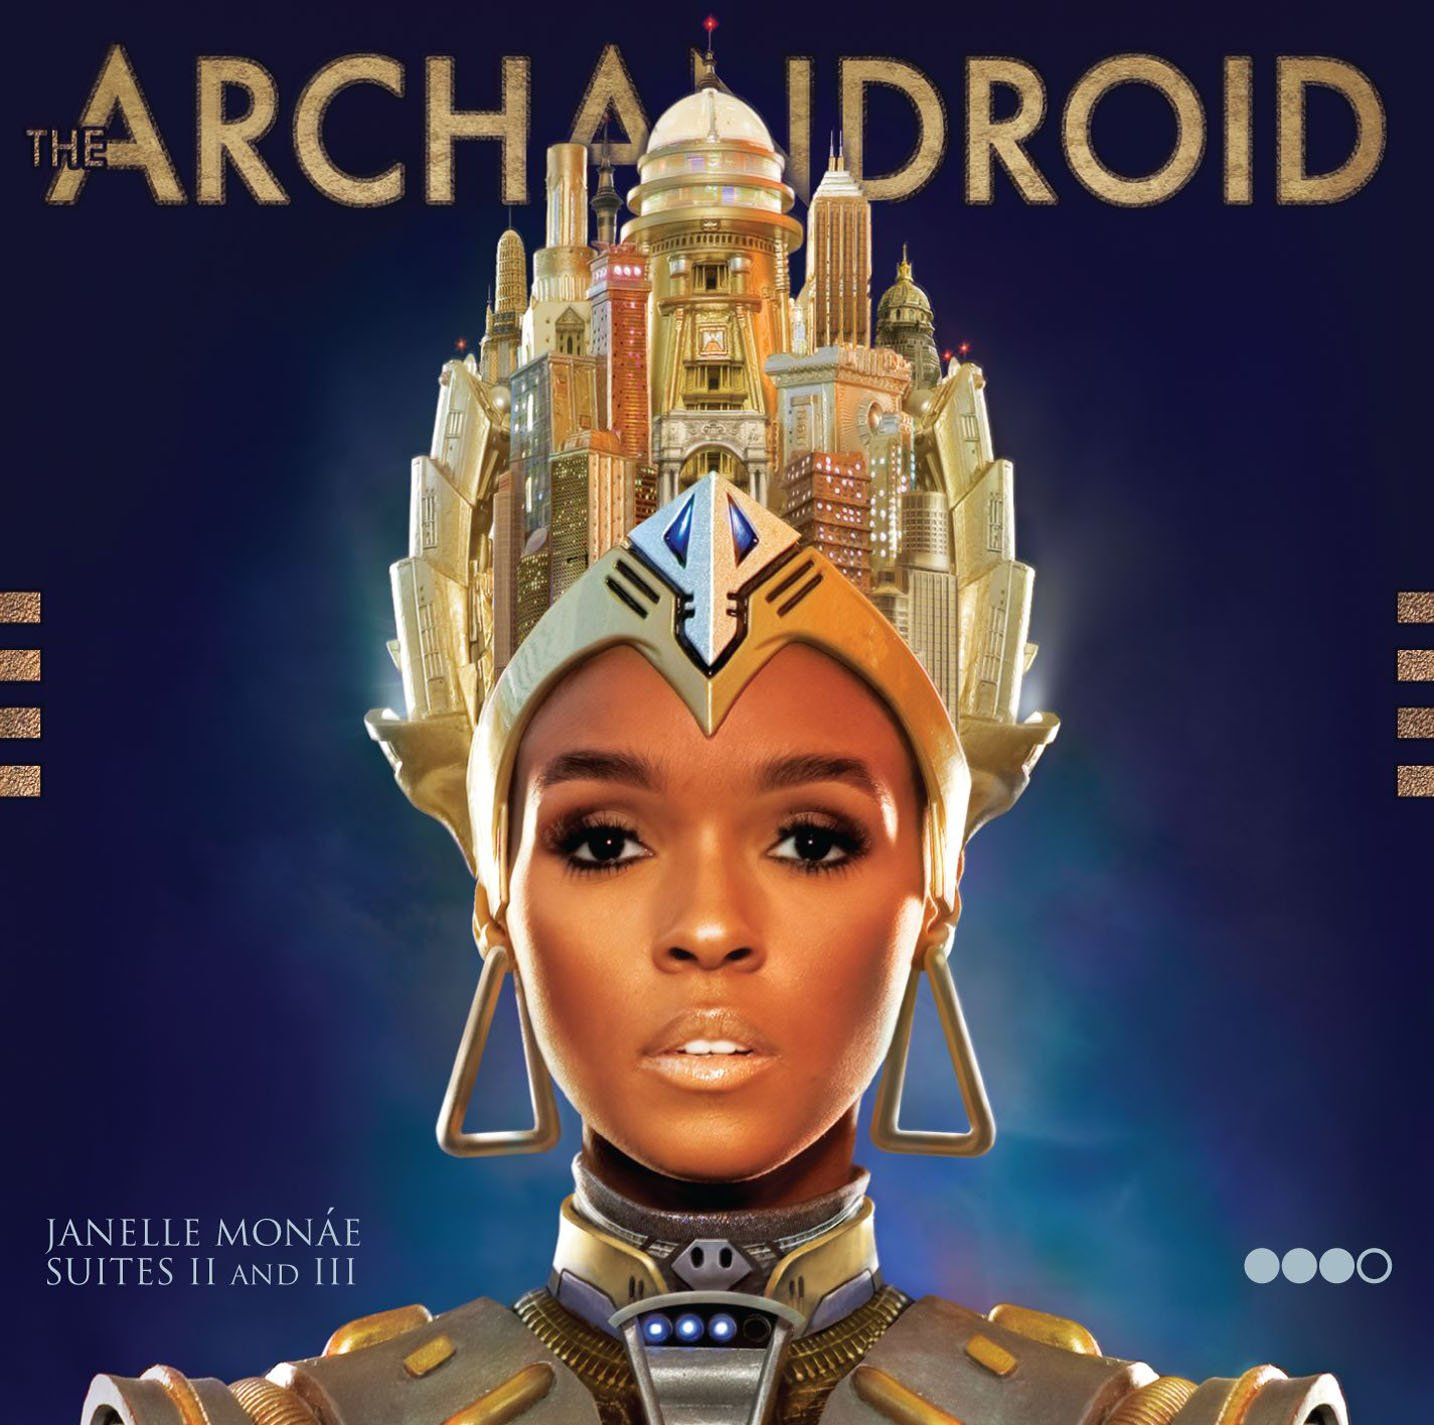 ArchAndroid, The (Vinyl)